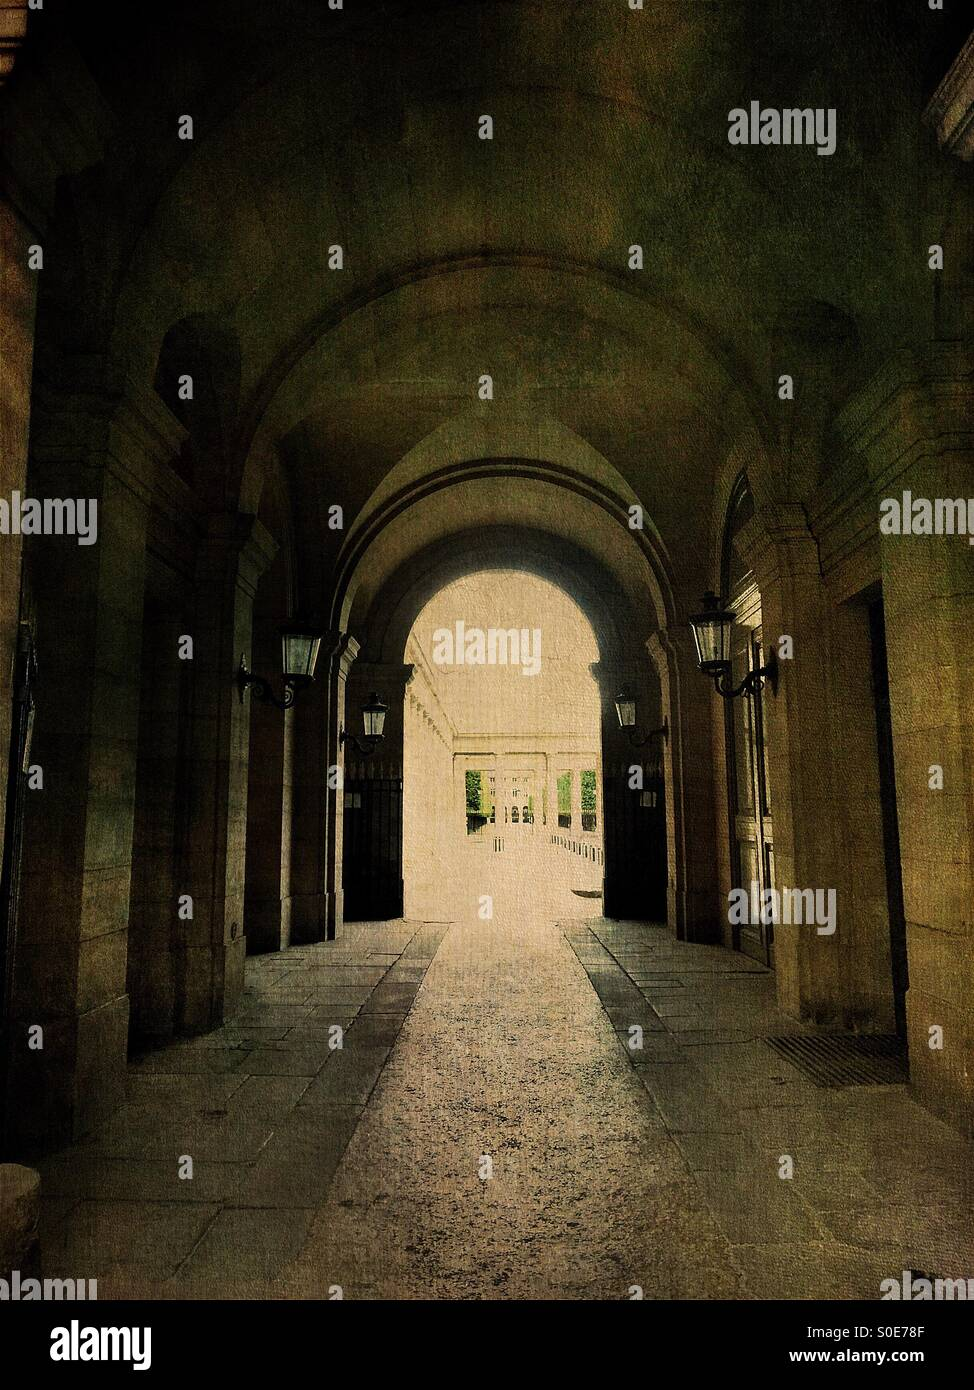 Arcade view of entrance to the galleries of the Place du Palais-Royal in the historic centre of Paris, France. Antique,Stock Photo